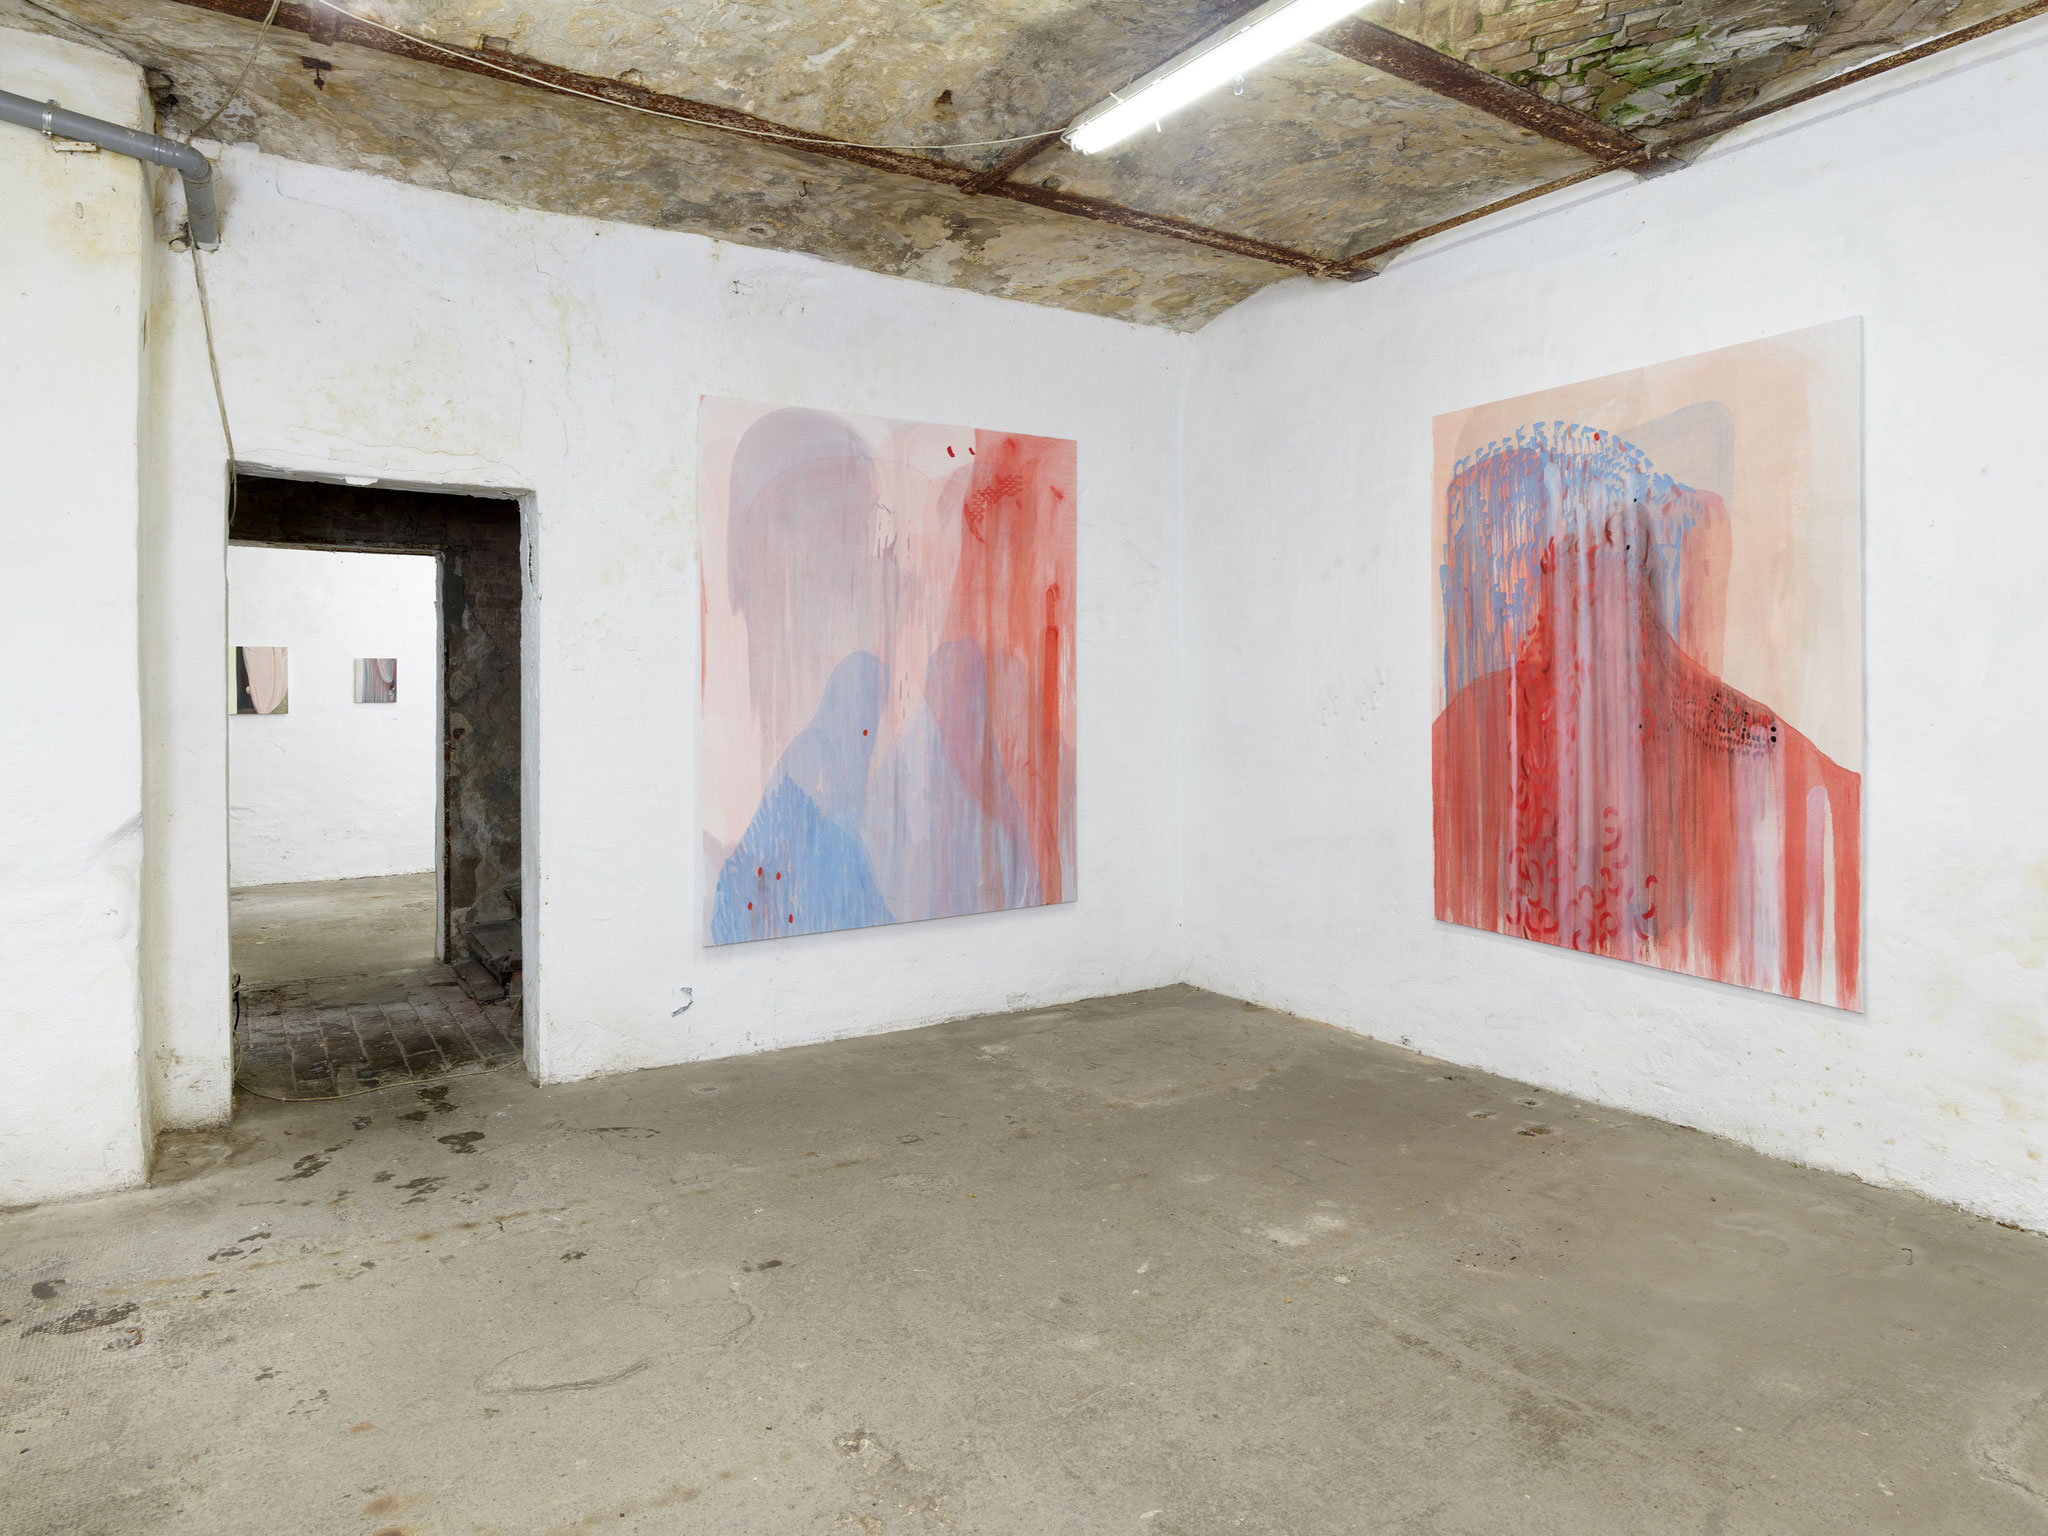 Exhibition 'A Matter of Touch' at Torstrasse Berlin. Curated by Jurriaan Benschop. Adrienne Elyse Meyers (paintings left) I Rubica von Streng (paintings right) CLOSENESS and MUSING / Photo: Eric Tschernow